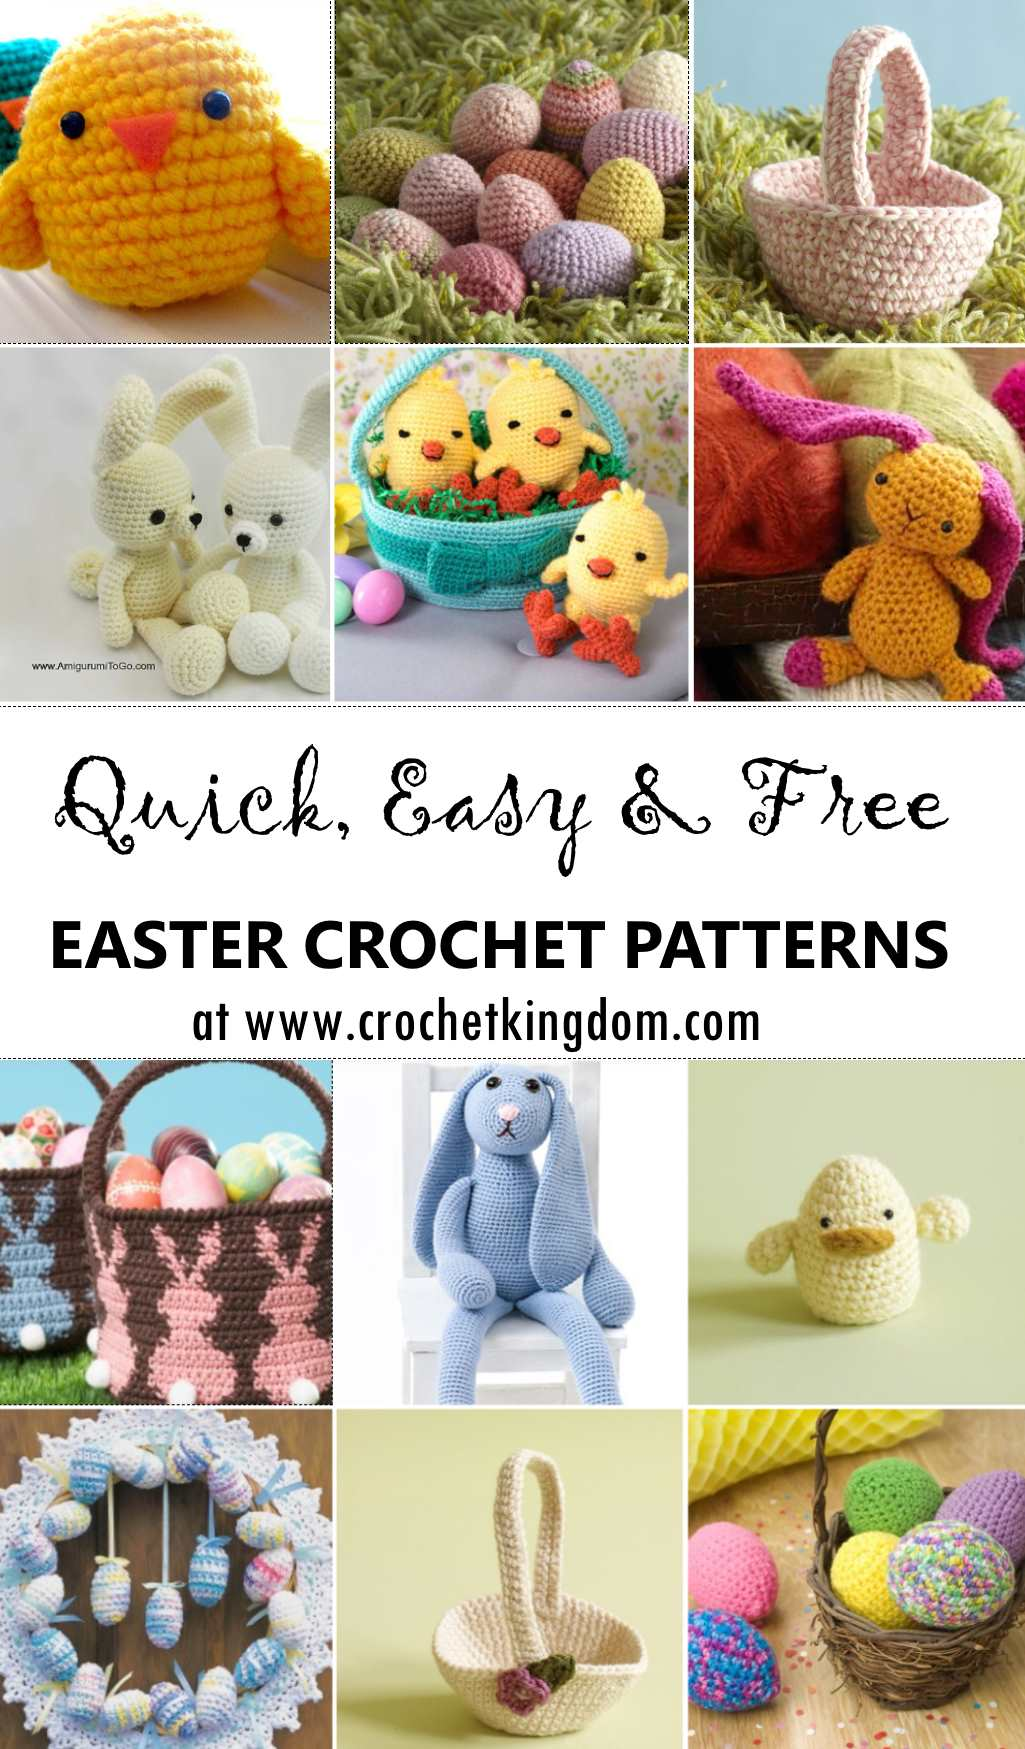 Free Easter Crochet Patterns that are Quick and Easy to Make!